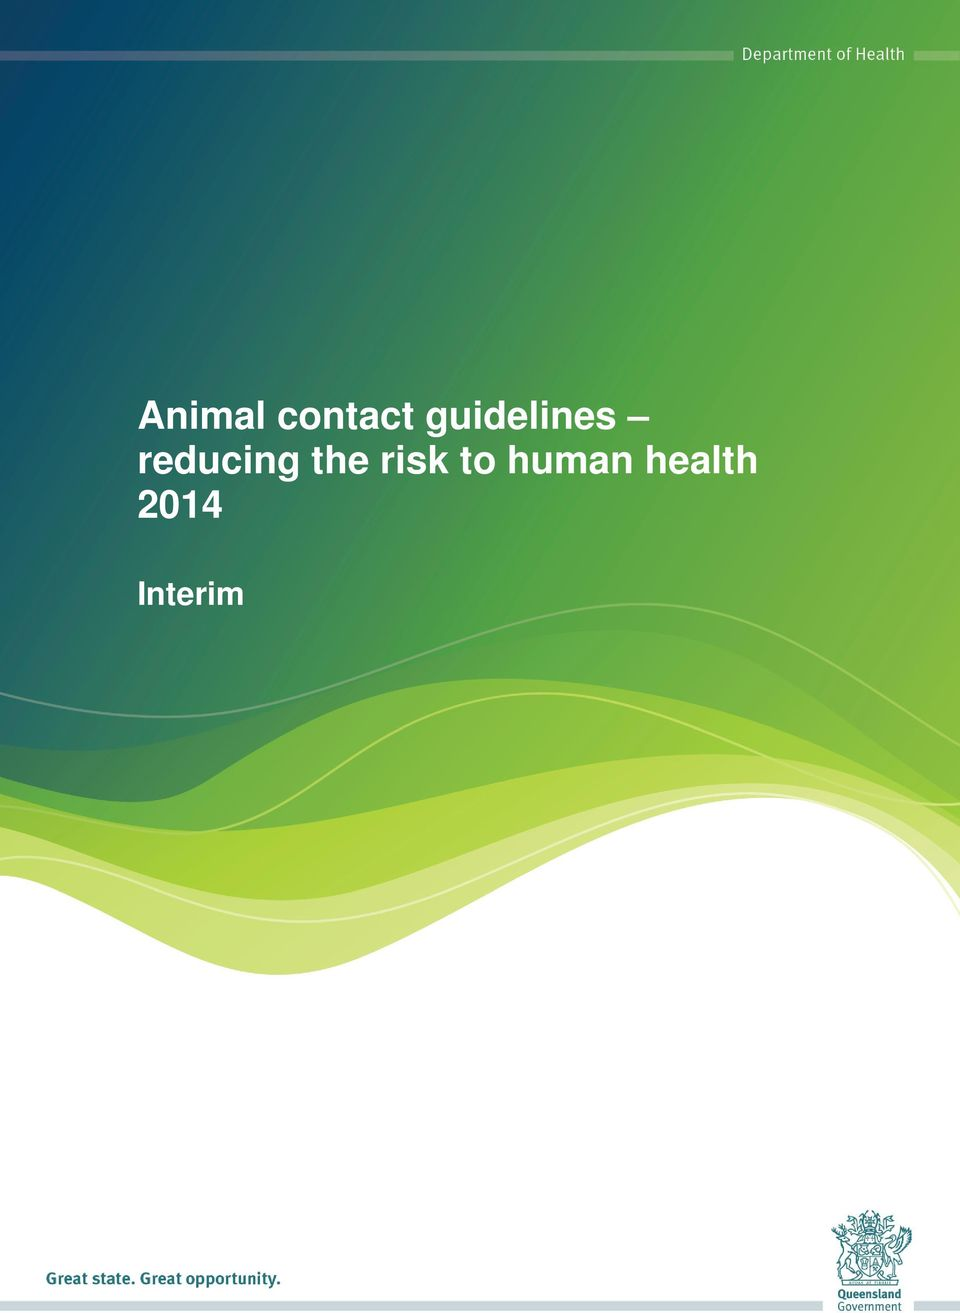 Interim  the risk to human health,